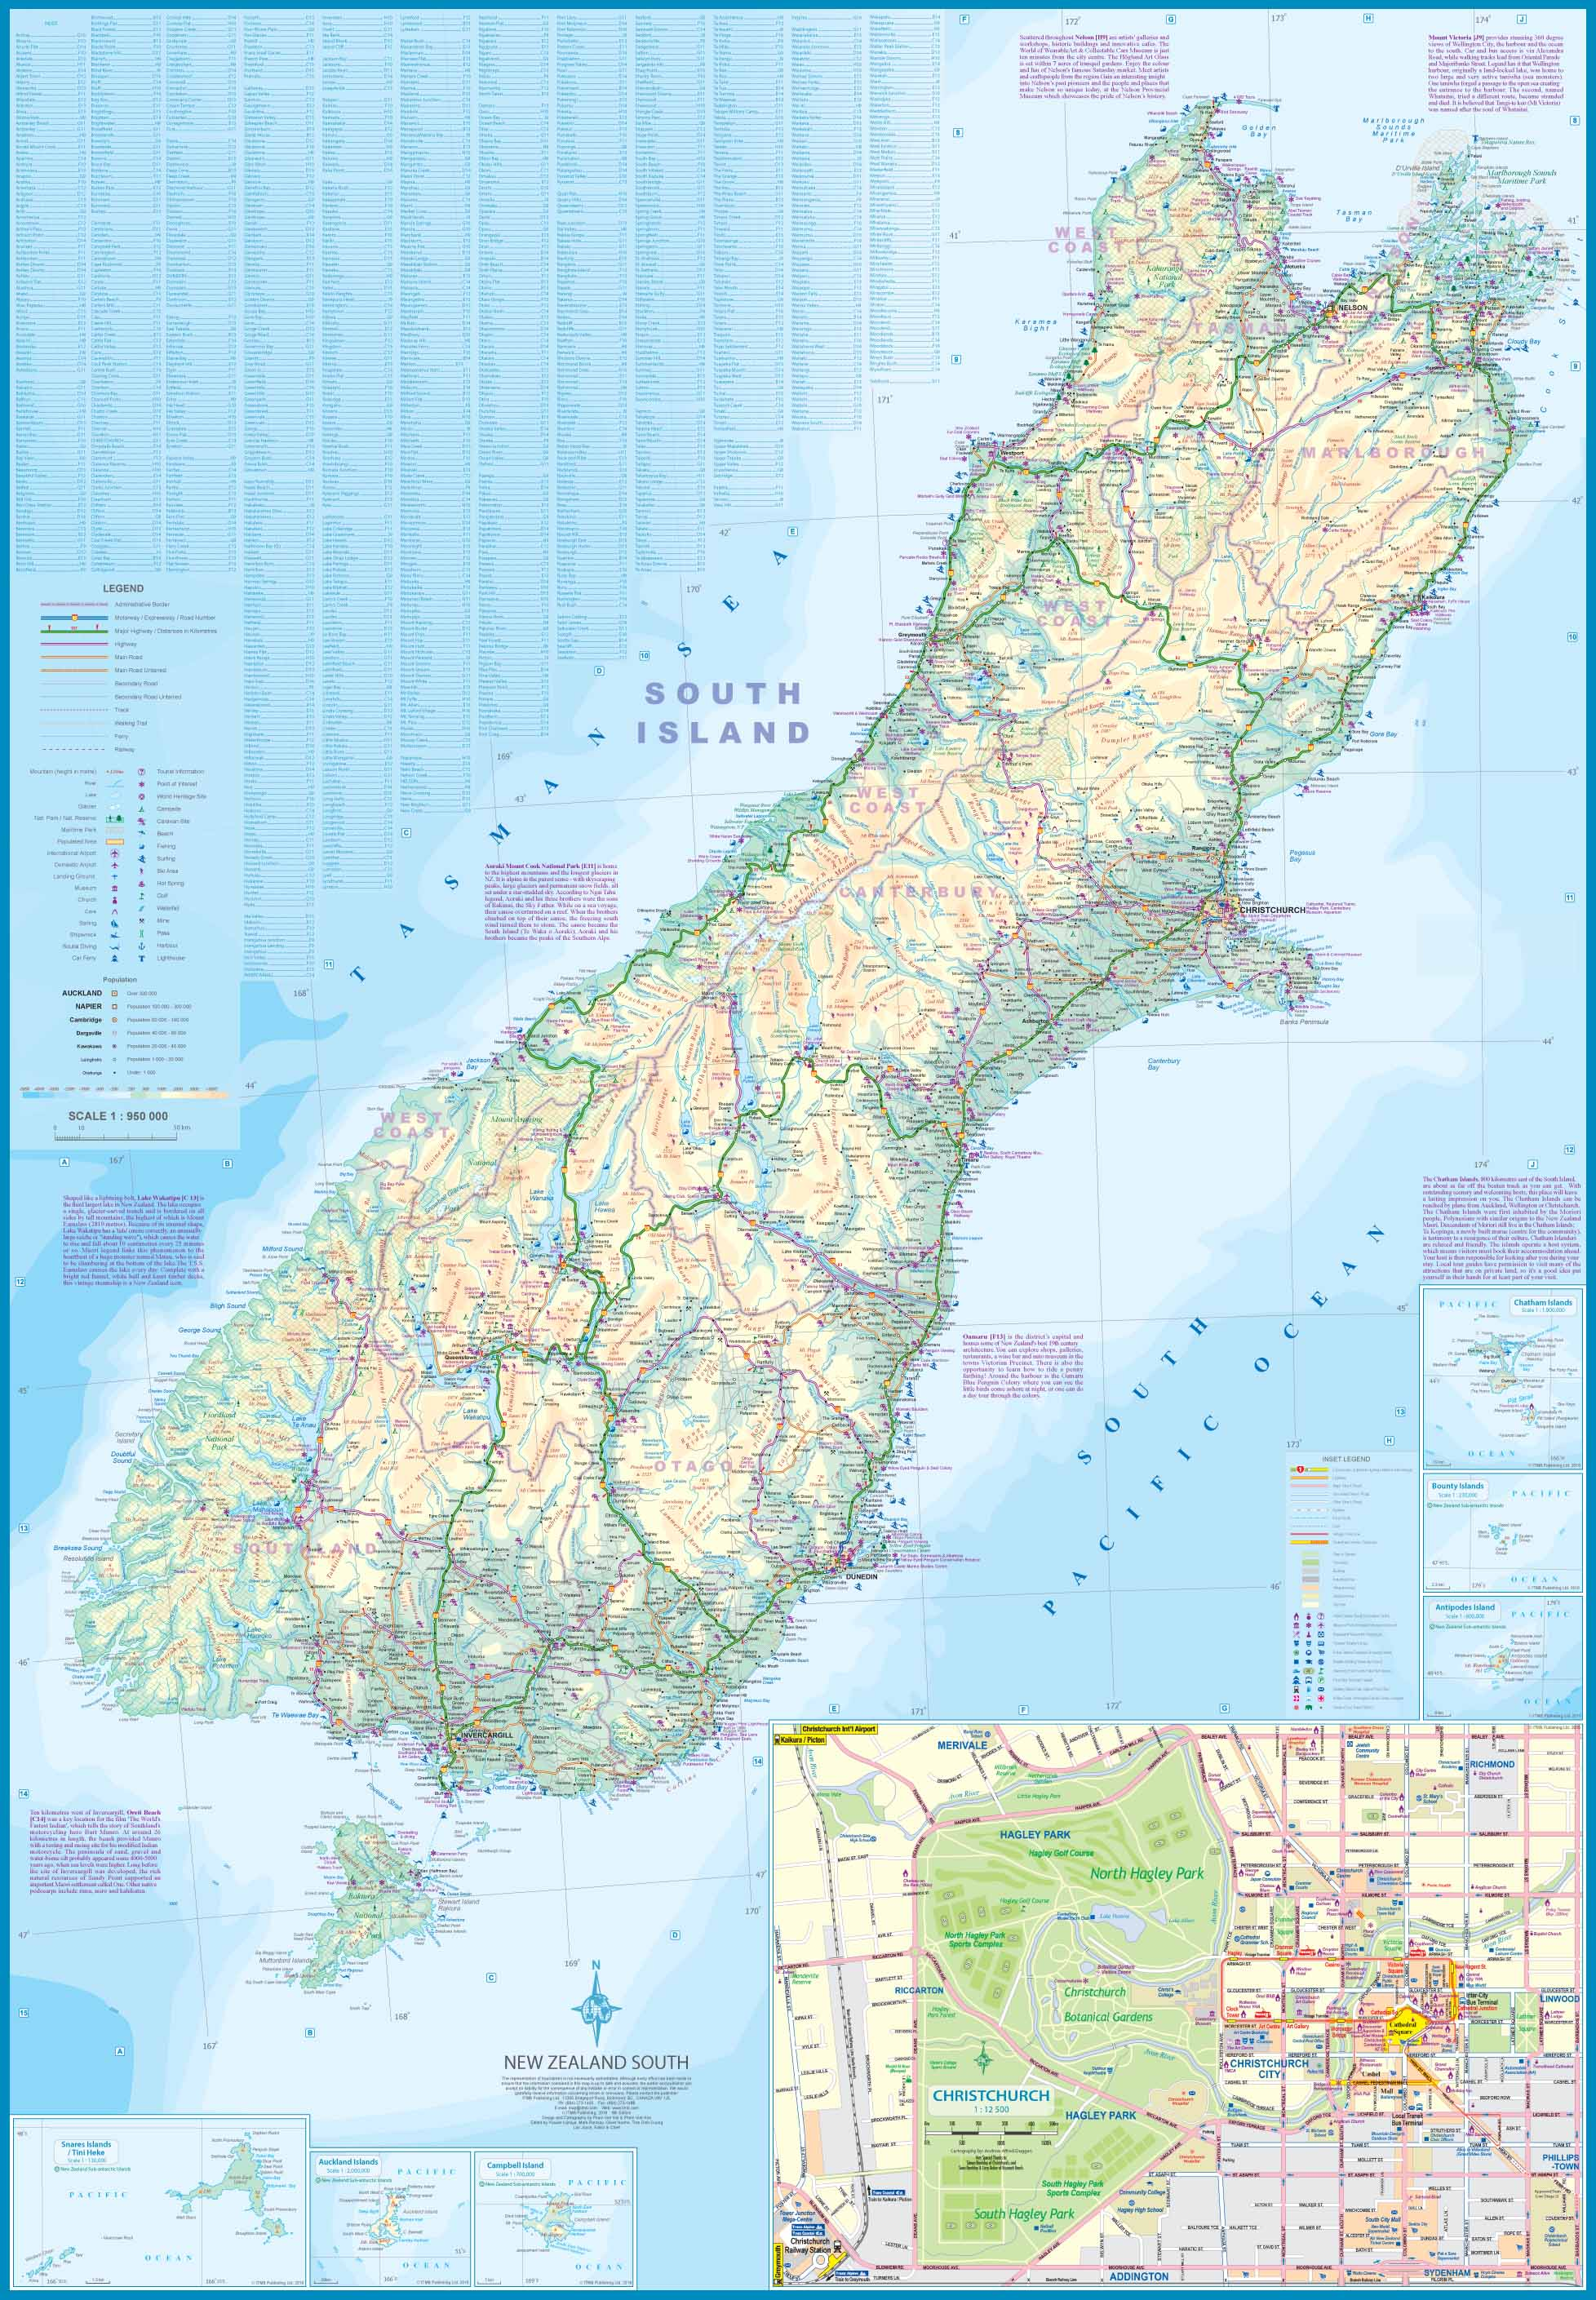 Topographic Map Of New Zealand.Maps For Travel City Maps Road Maps Guides Globes Topographic Maps